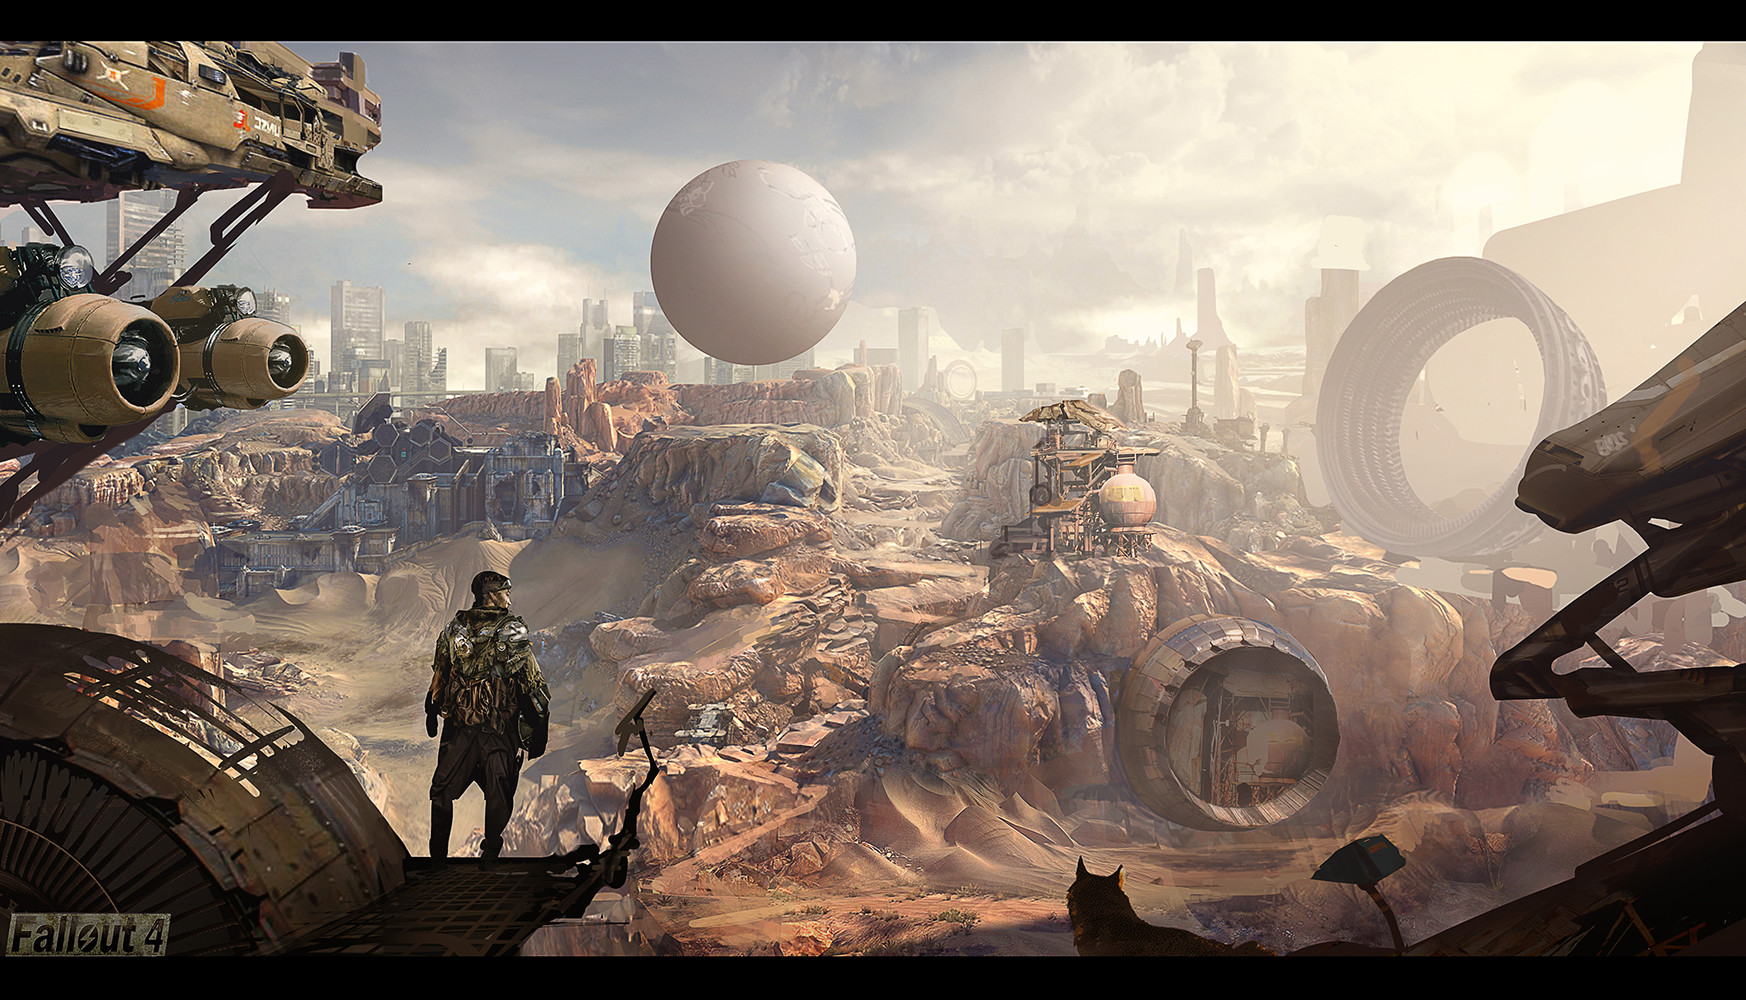 Concept Art Fallout 4 Artwork